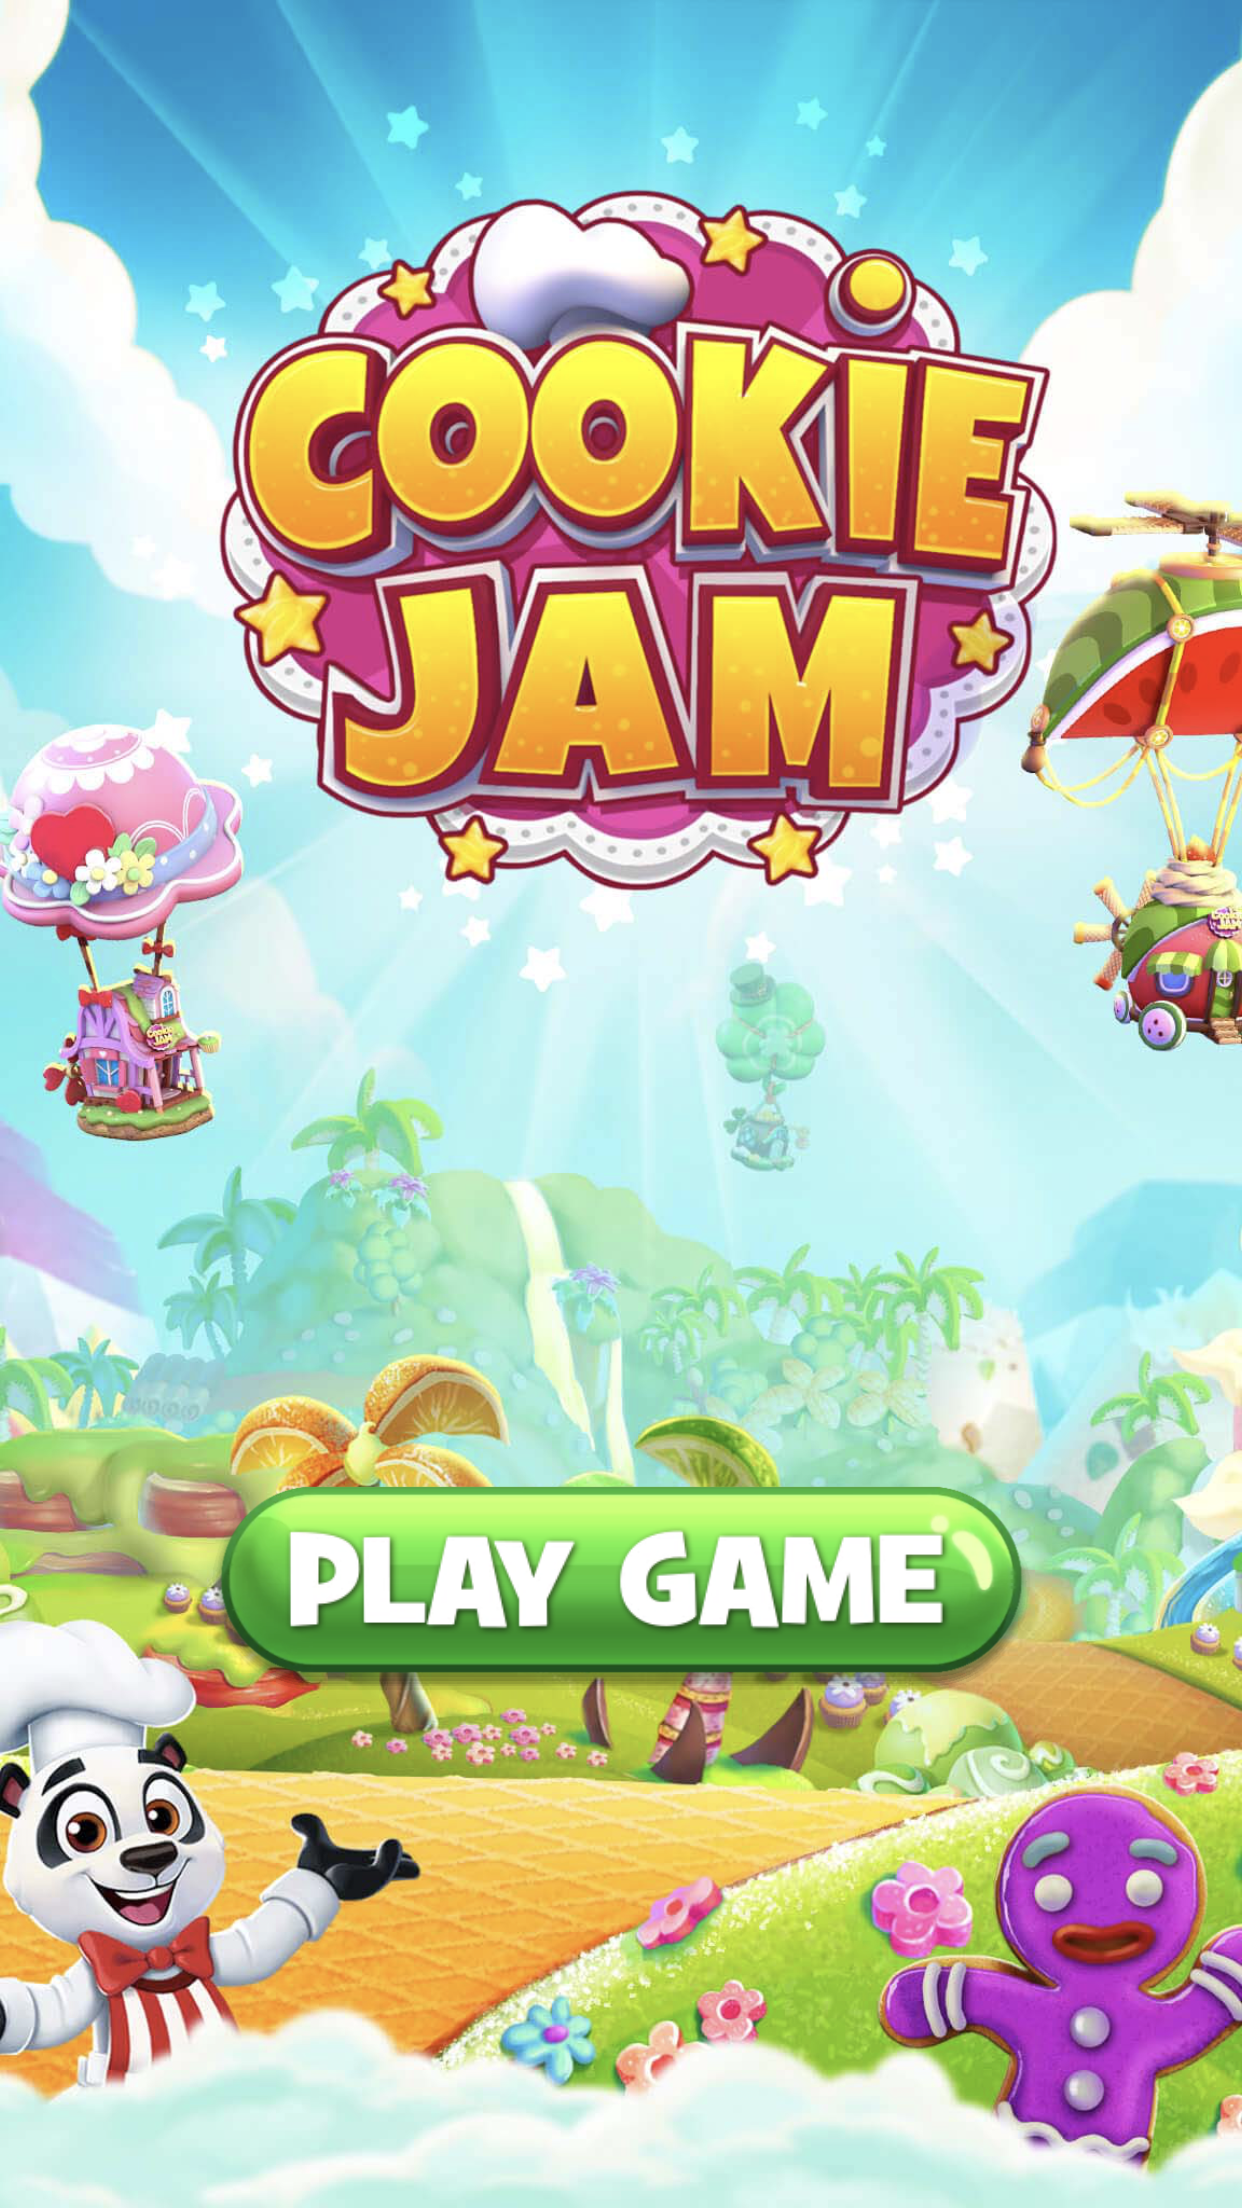 I love Cookie Jam and I'm currently on level 791 Jam